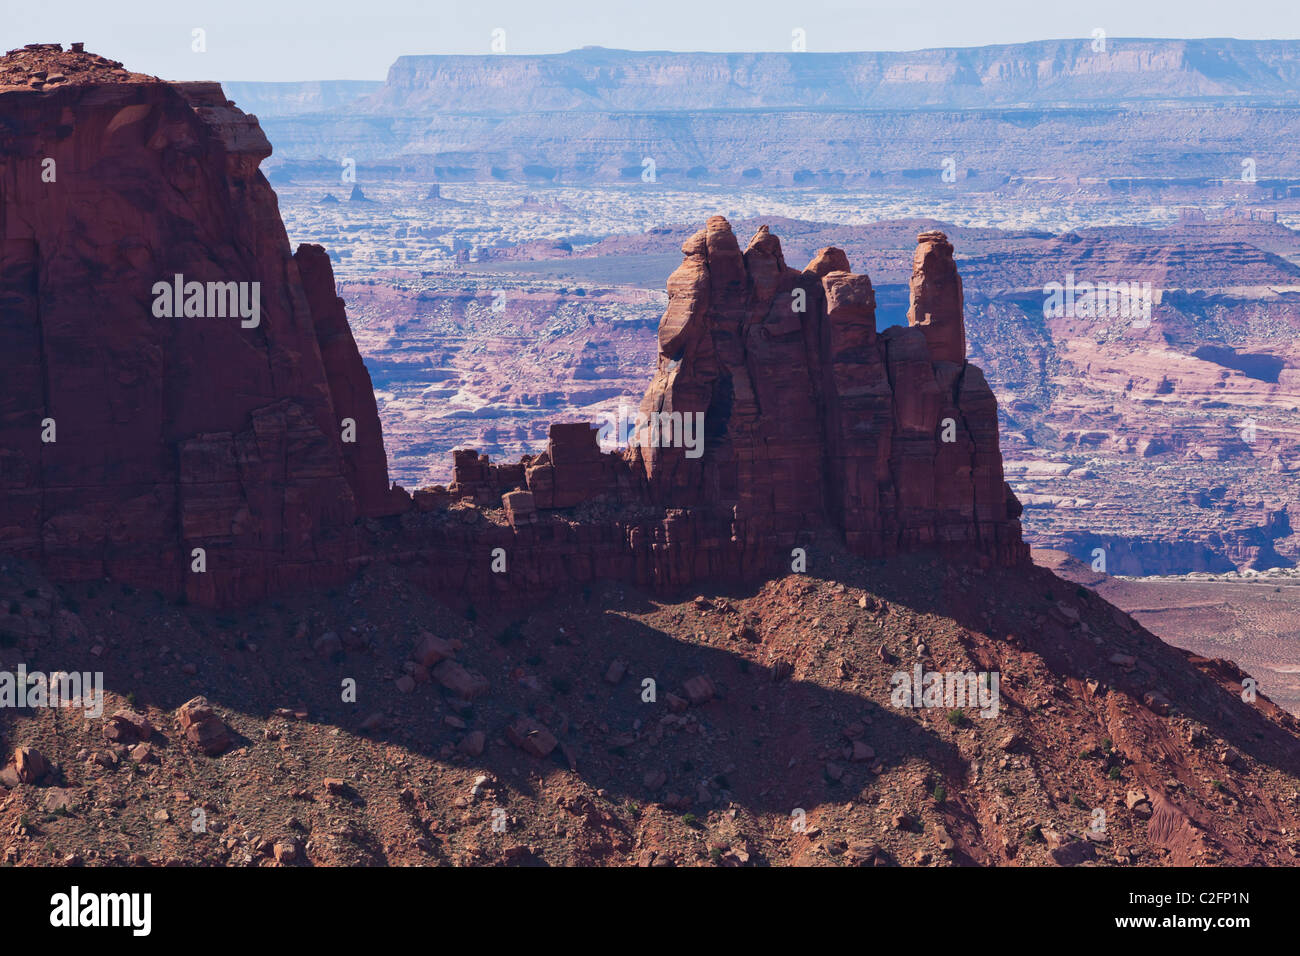 A fin of rock jutting out above the river canyons below in Canyonlands National Park, Utah, USA. - Stock Image